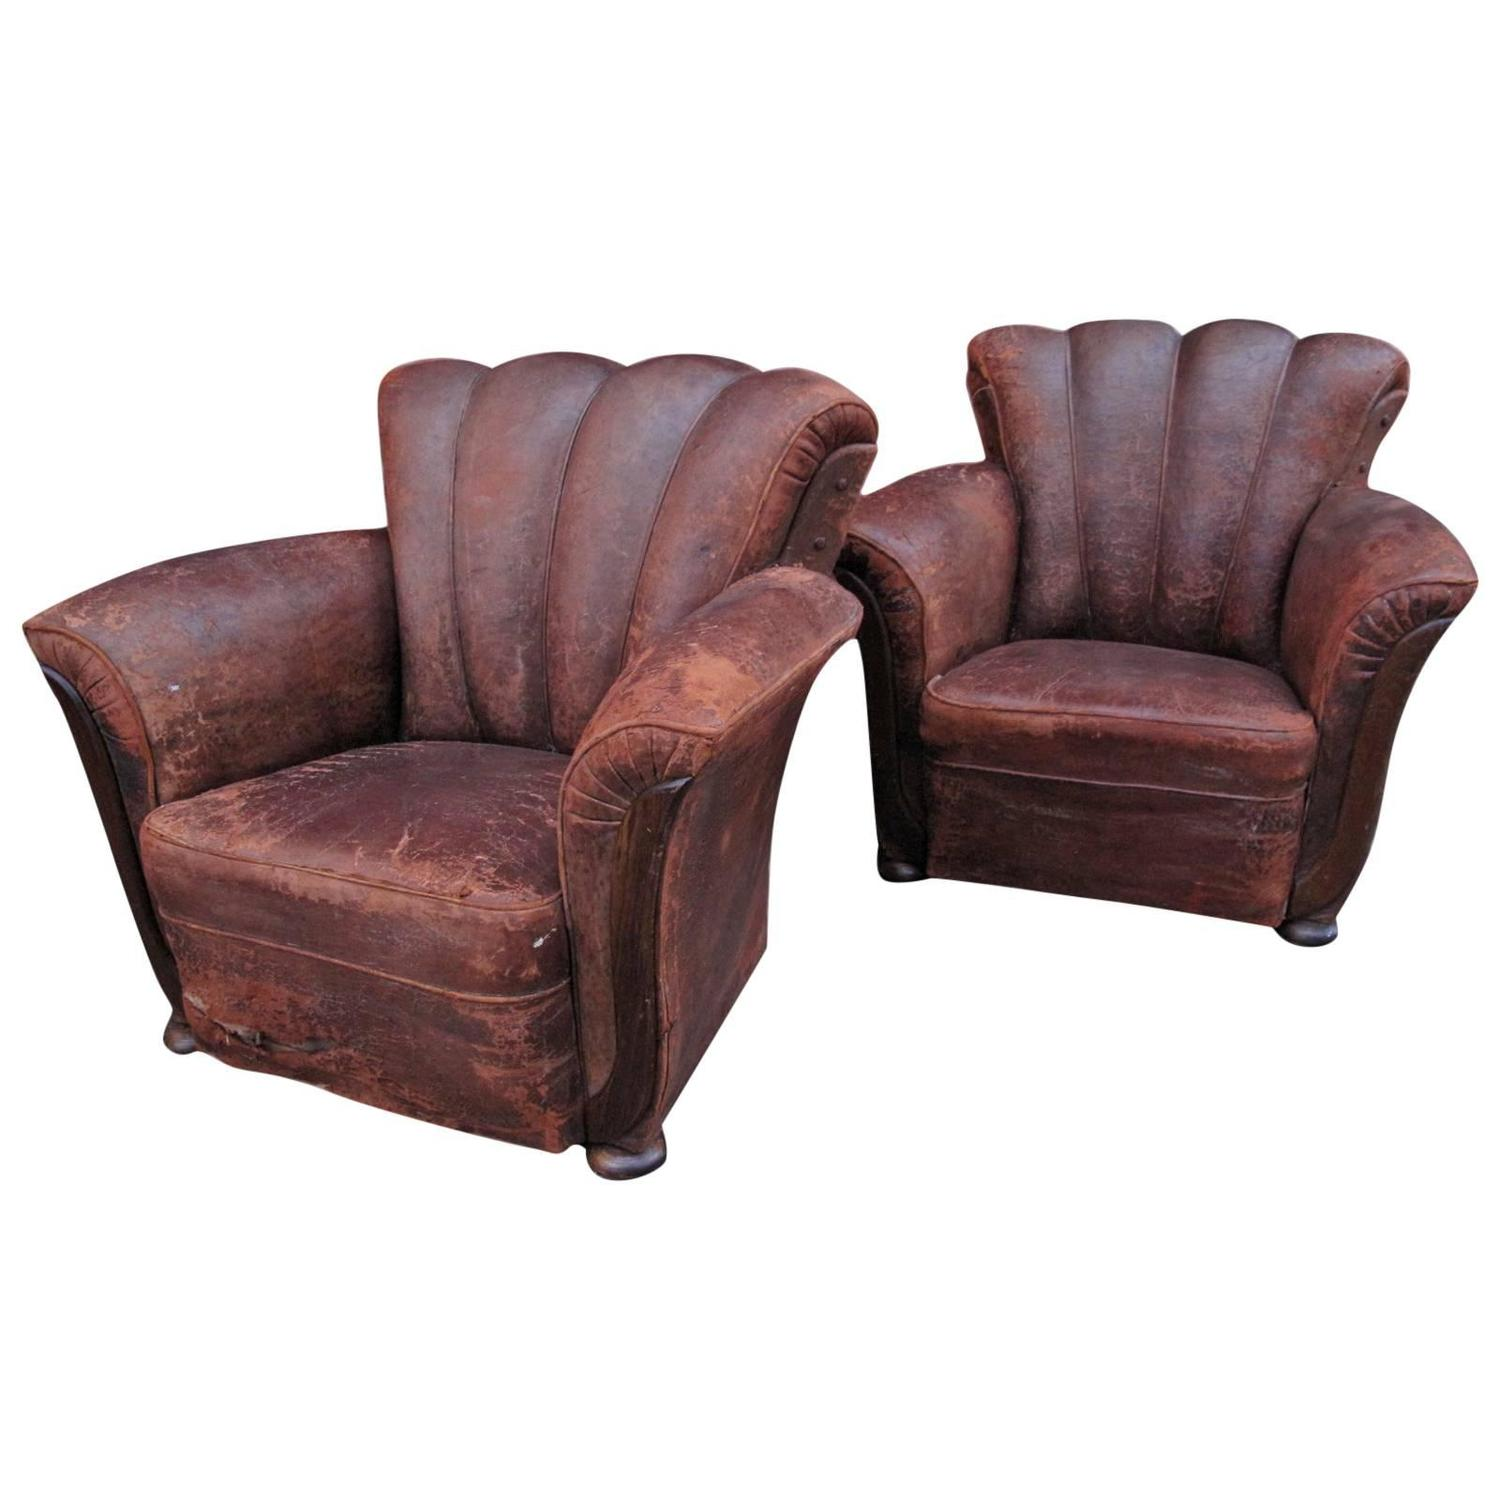 Pair of French Art Deco Leather Club Chairs at 1stdibs